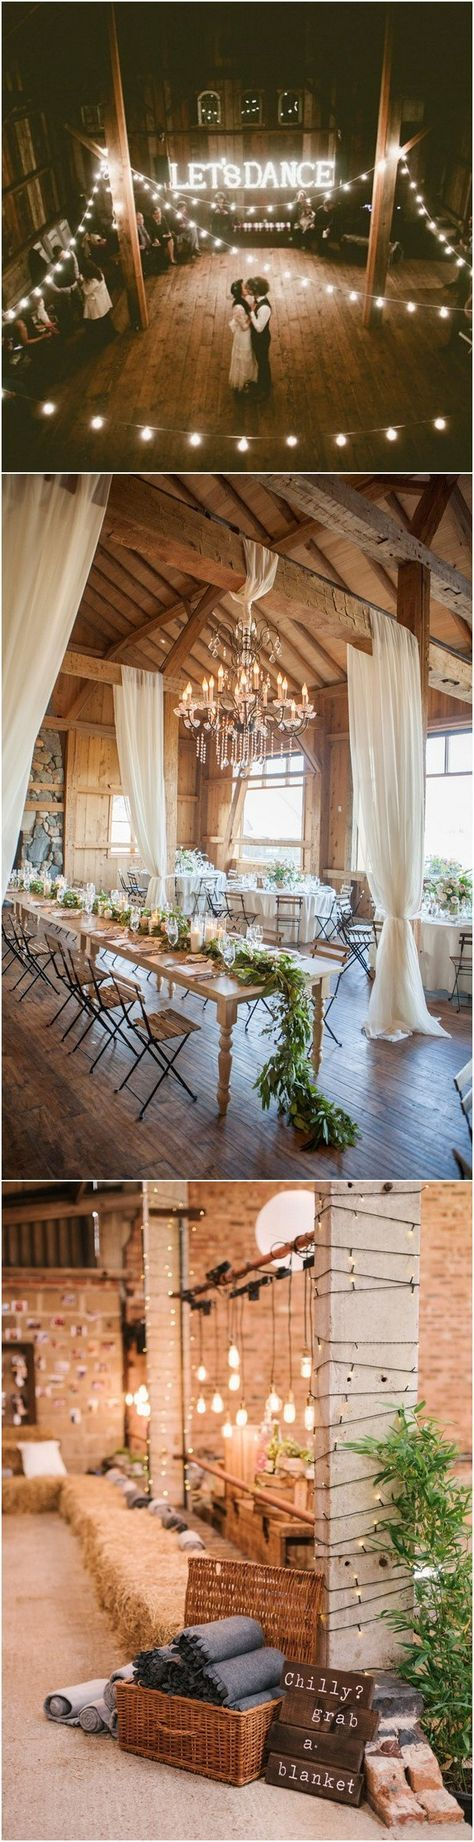 20 Gorgeous Ideas for a Rustic Barn Wedding - EmmaLovesWeddings #eventingbarn